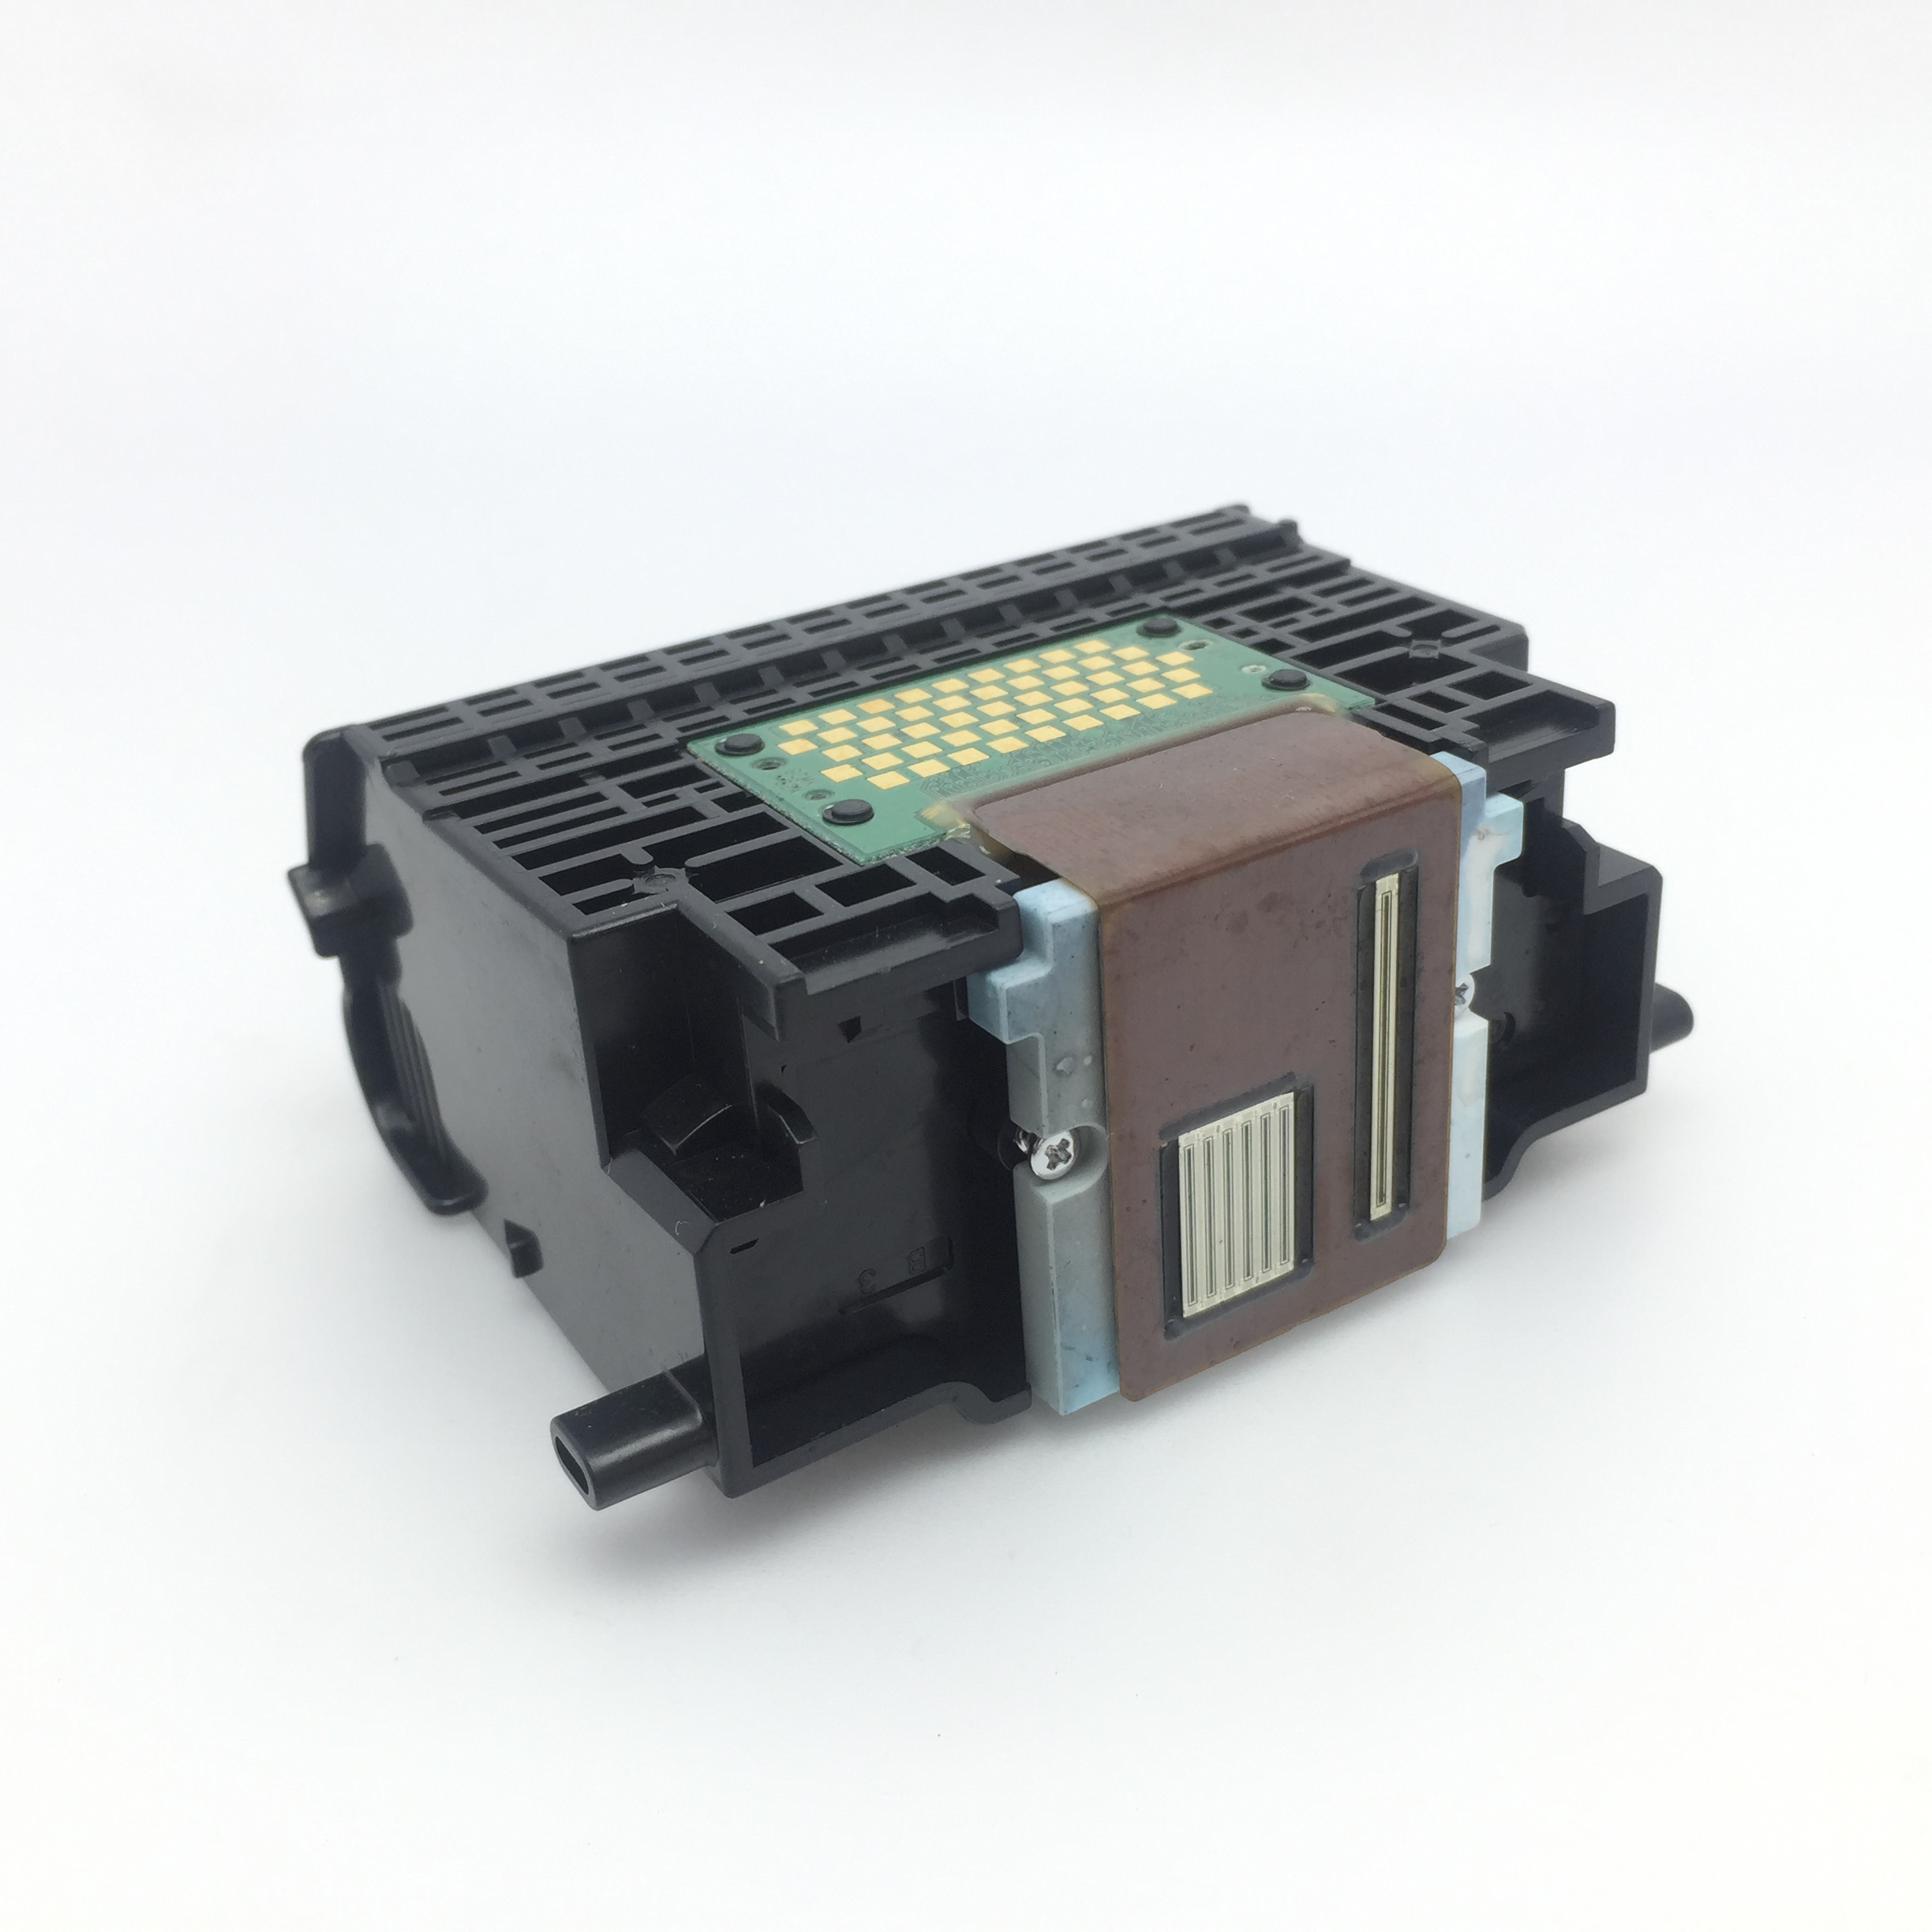 Good Logistics Free Shipping PRINT HEAD QY6-0061 Refurbished printhead for Canon Printer iP5200 MP800 MP830 iP4300 MP600 new original print head qy6 0061 00 printhead for canon ip4300 ip5200 ip5200r mp600 mp600r mp800 mp800r mp830 plotter